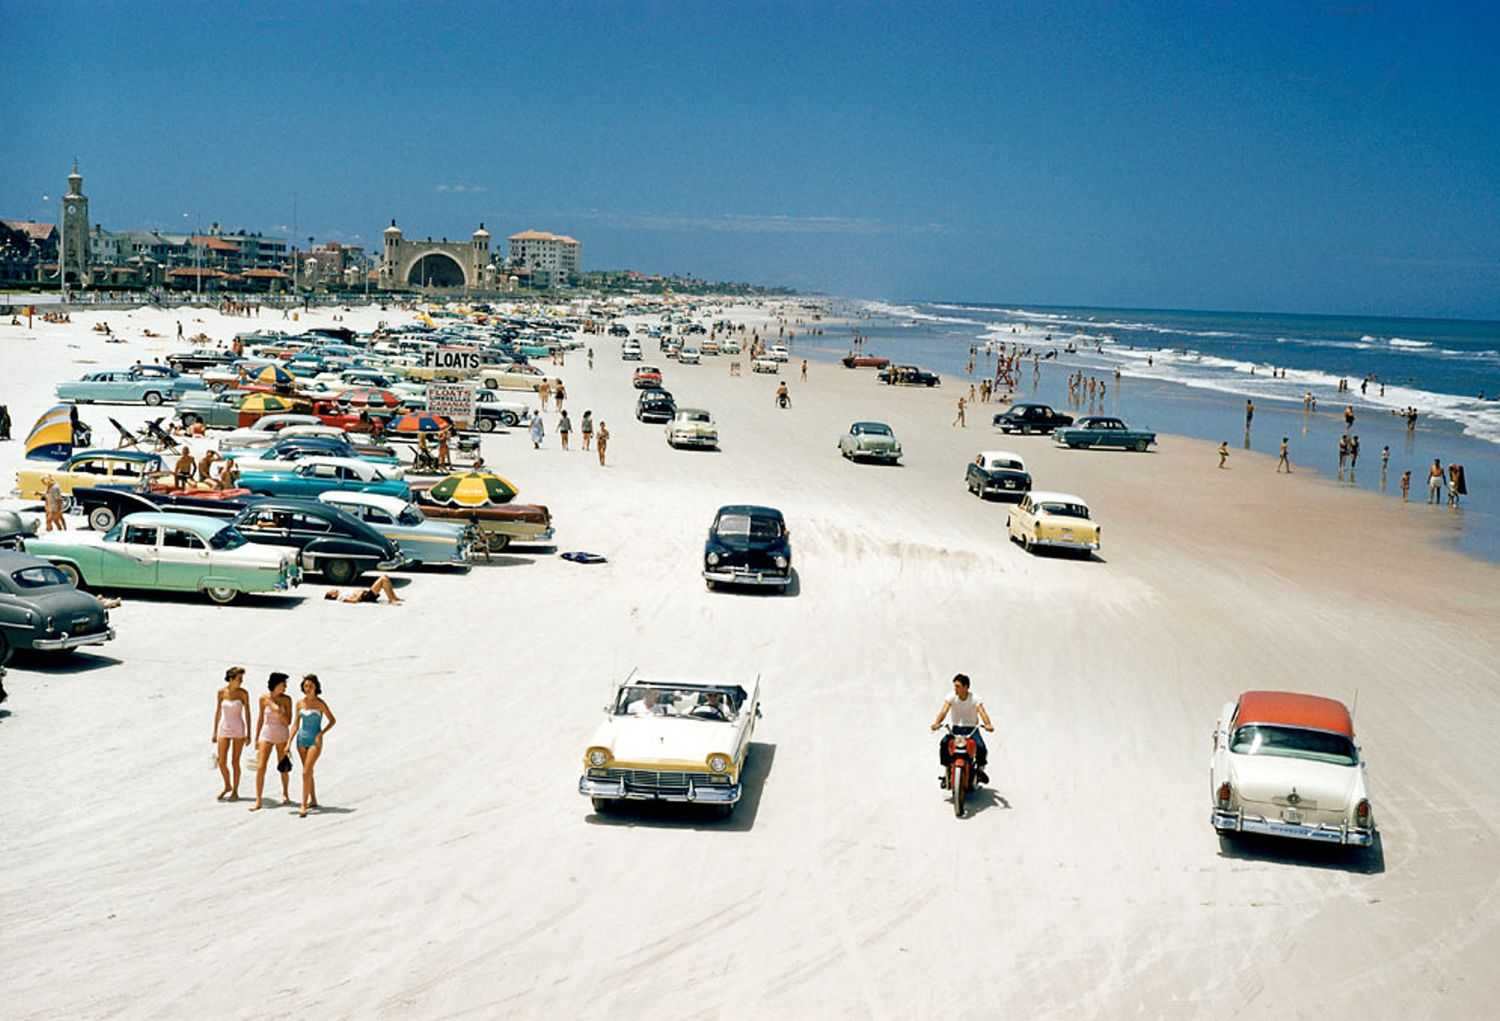 Traffic-congestion-on-Daytona-Beach-Florida-1957-Photo-©-J.-Baylor-Roberts-National-Geographic-Getty-Images